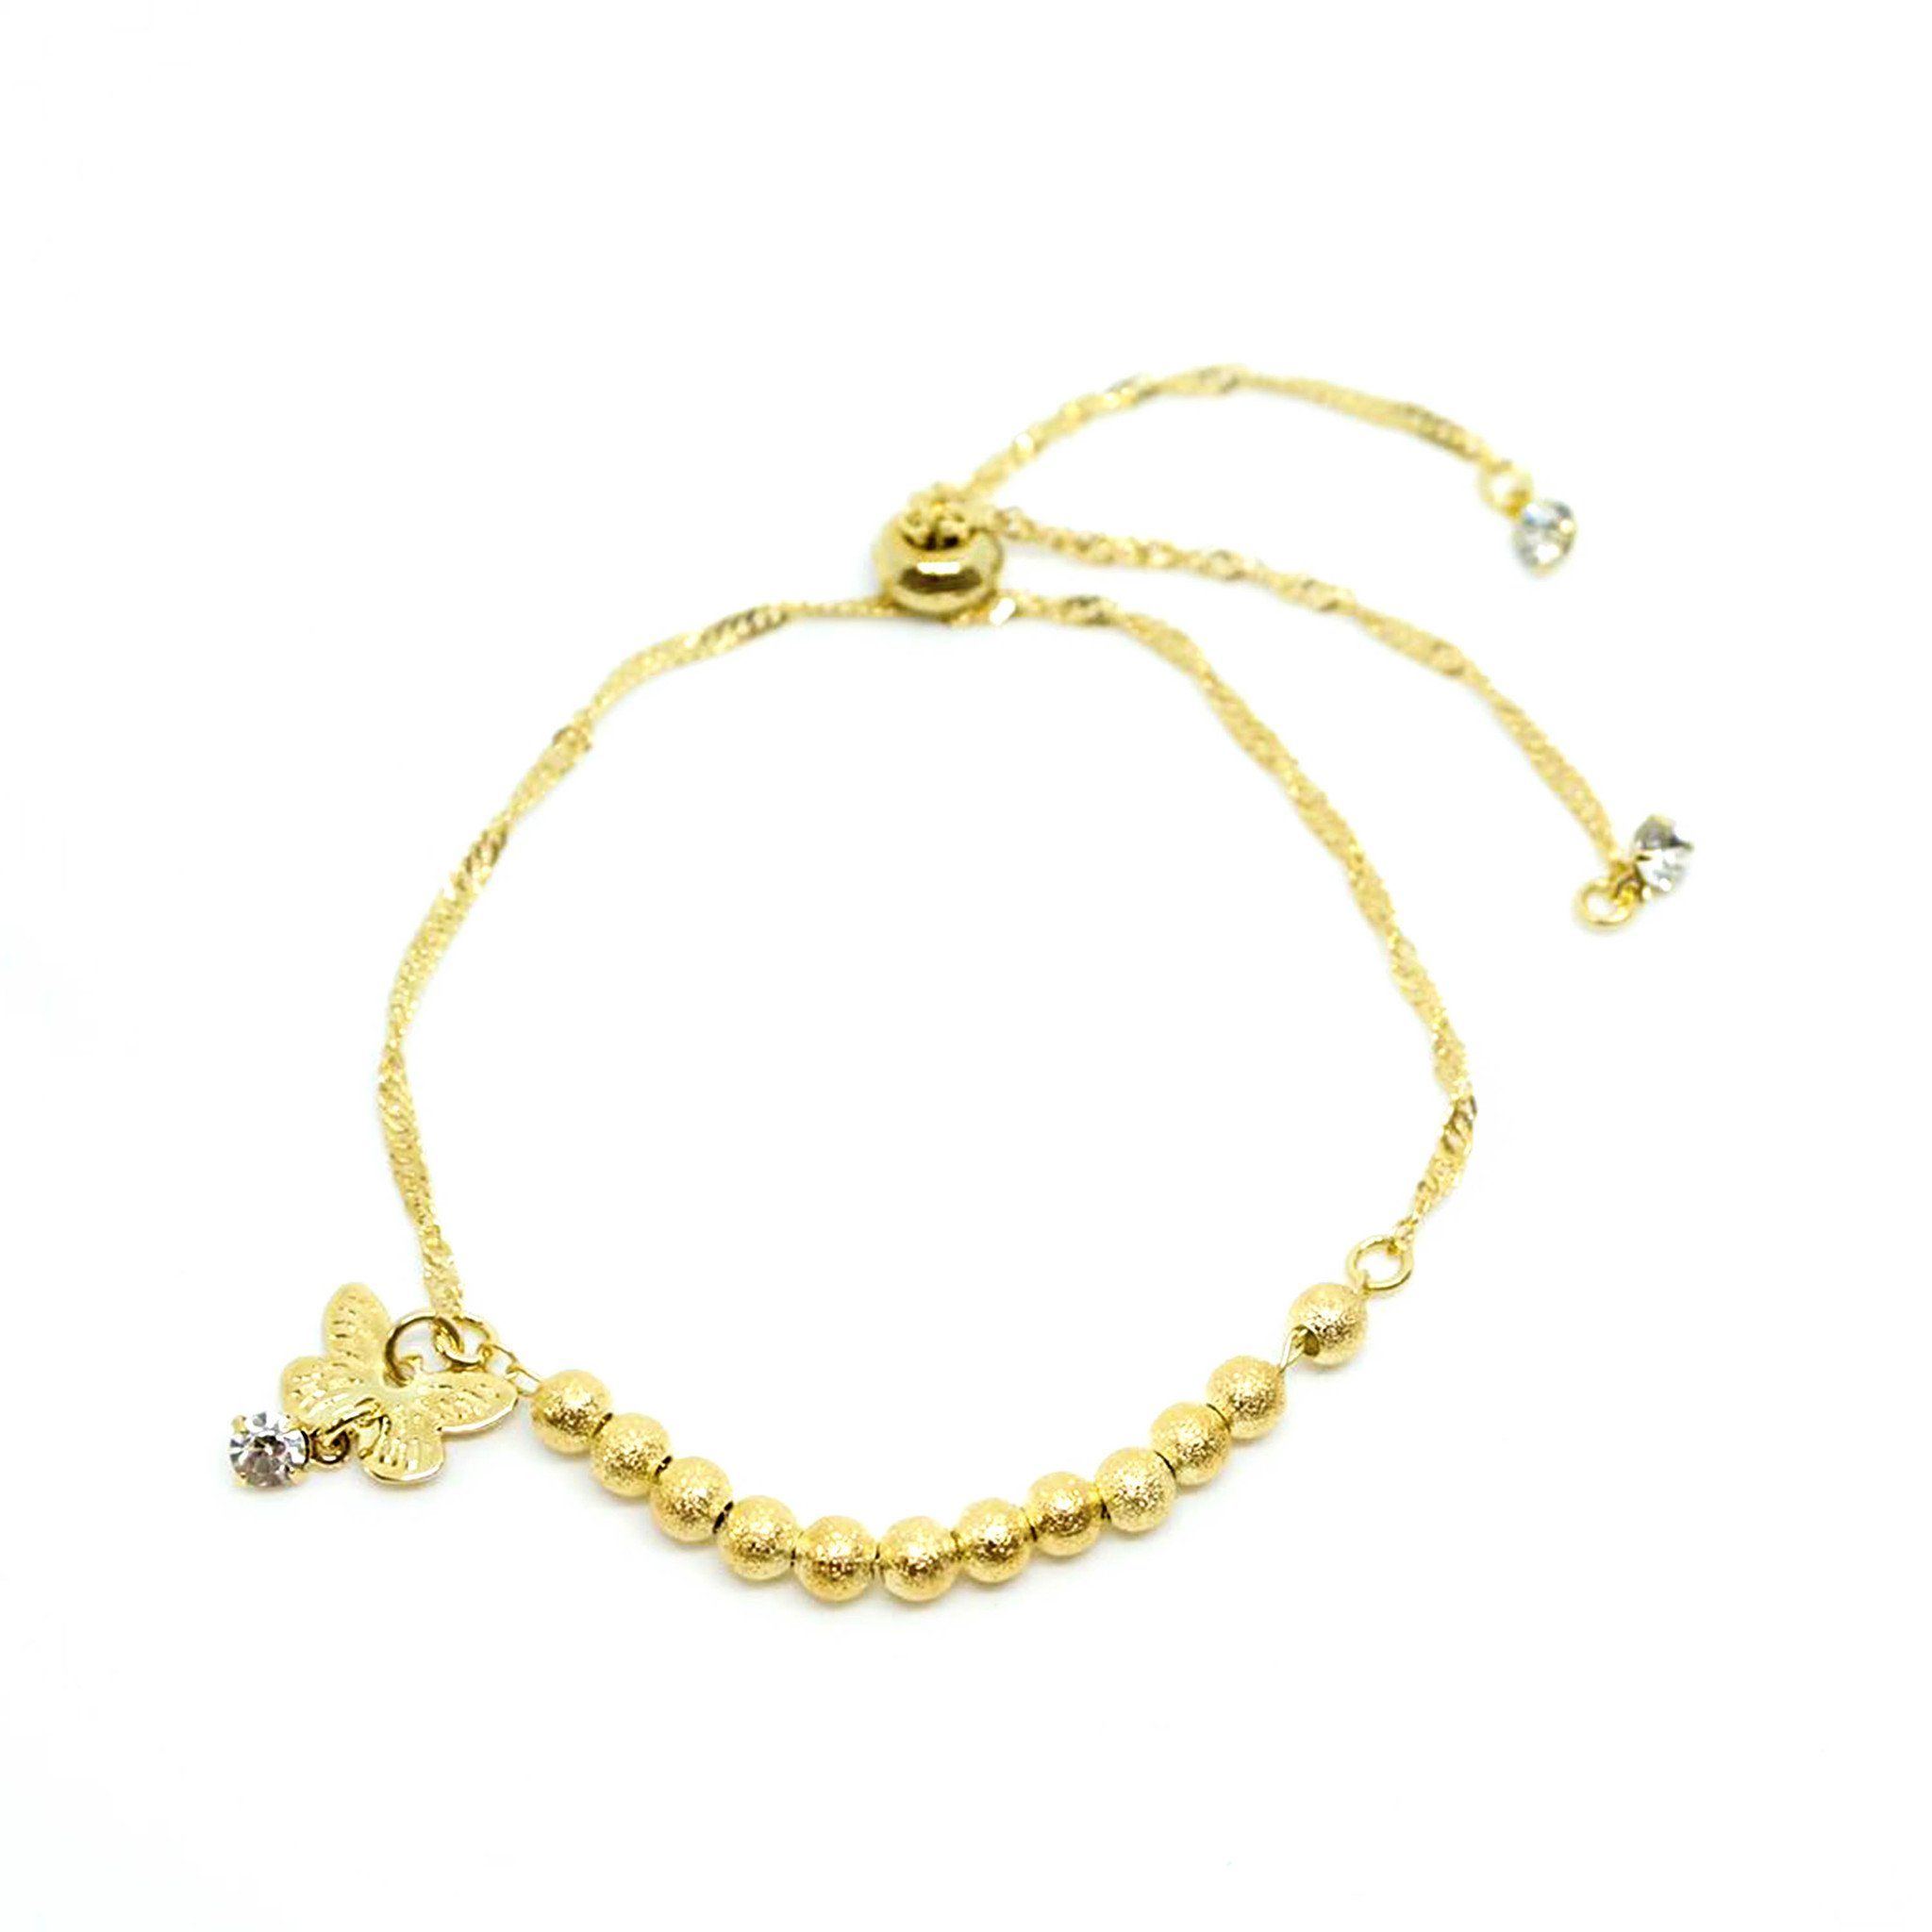 nell tipton slider xs gold chain product tone bracelet pearl ashley